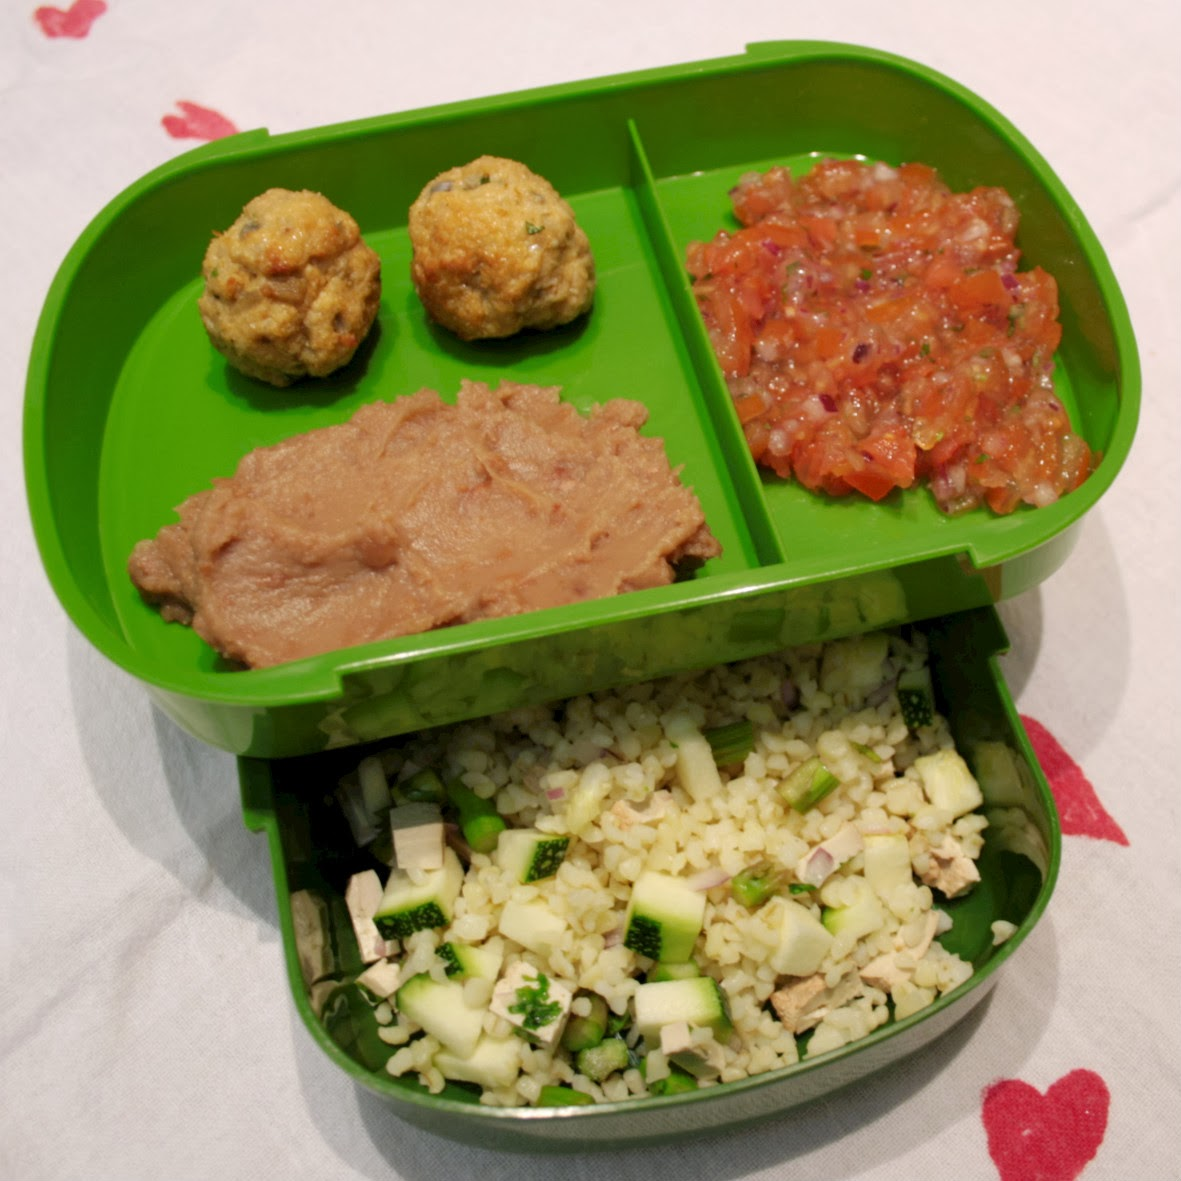 turkey meatballs for lunch in my green bento box - tukey meatballs, bulgar wheat salad, homemade salsa and refried beans